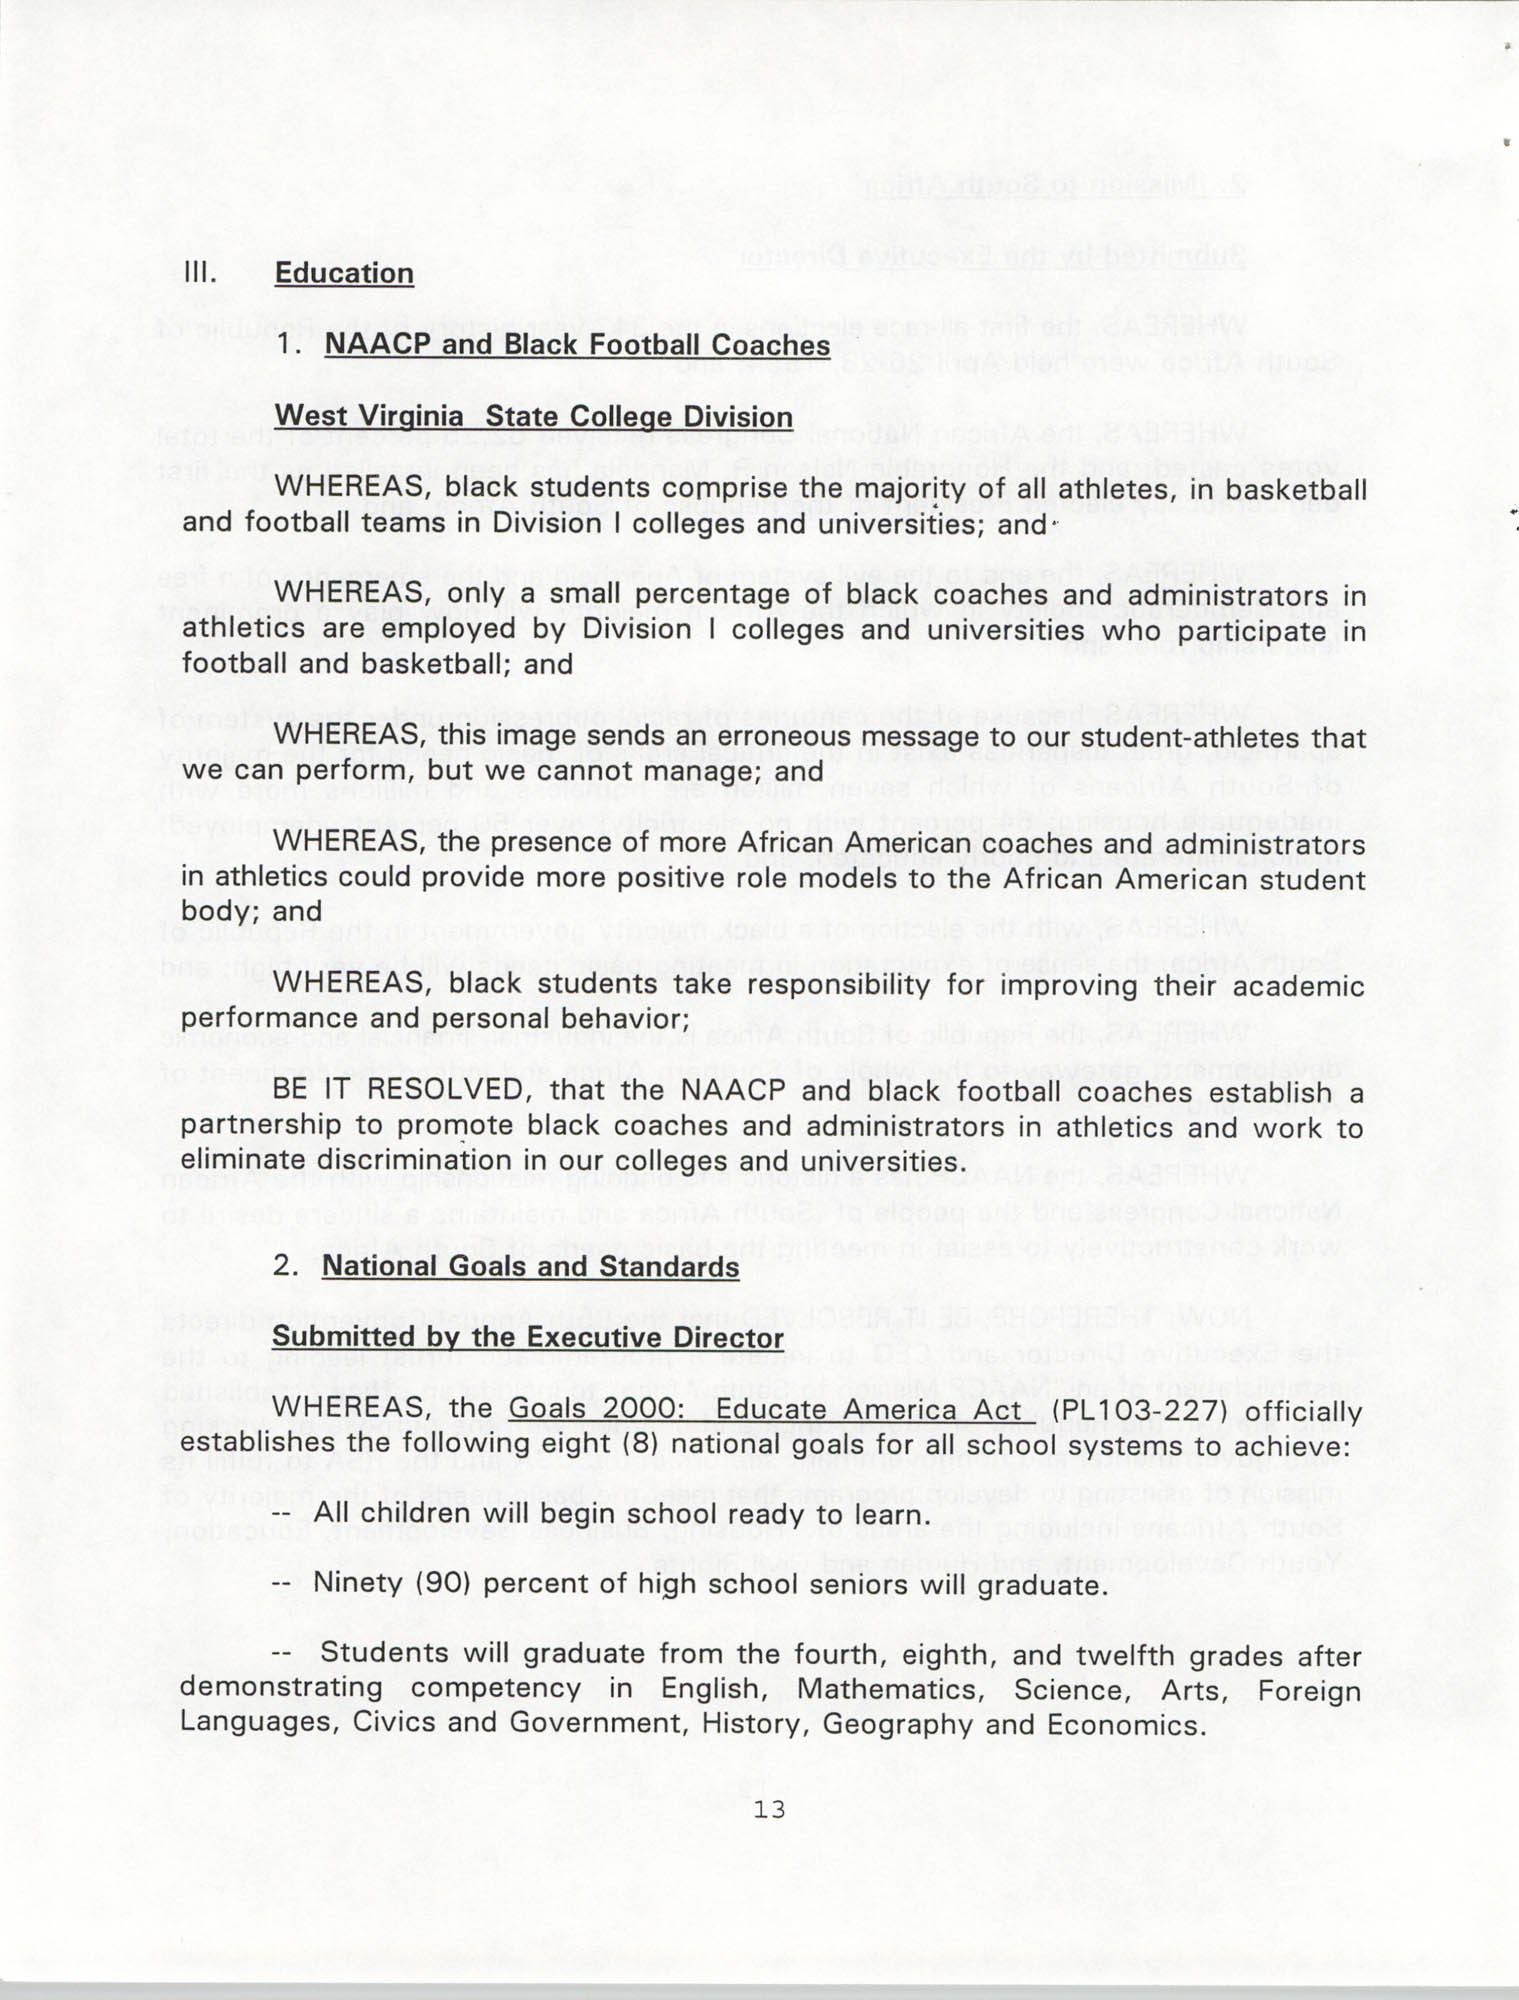 Resolutions Submitted Under Article X, Section 2 of the Constitution of the NAACP, 1994, Page 13